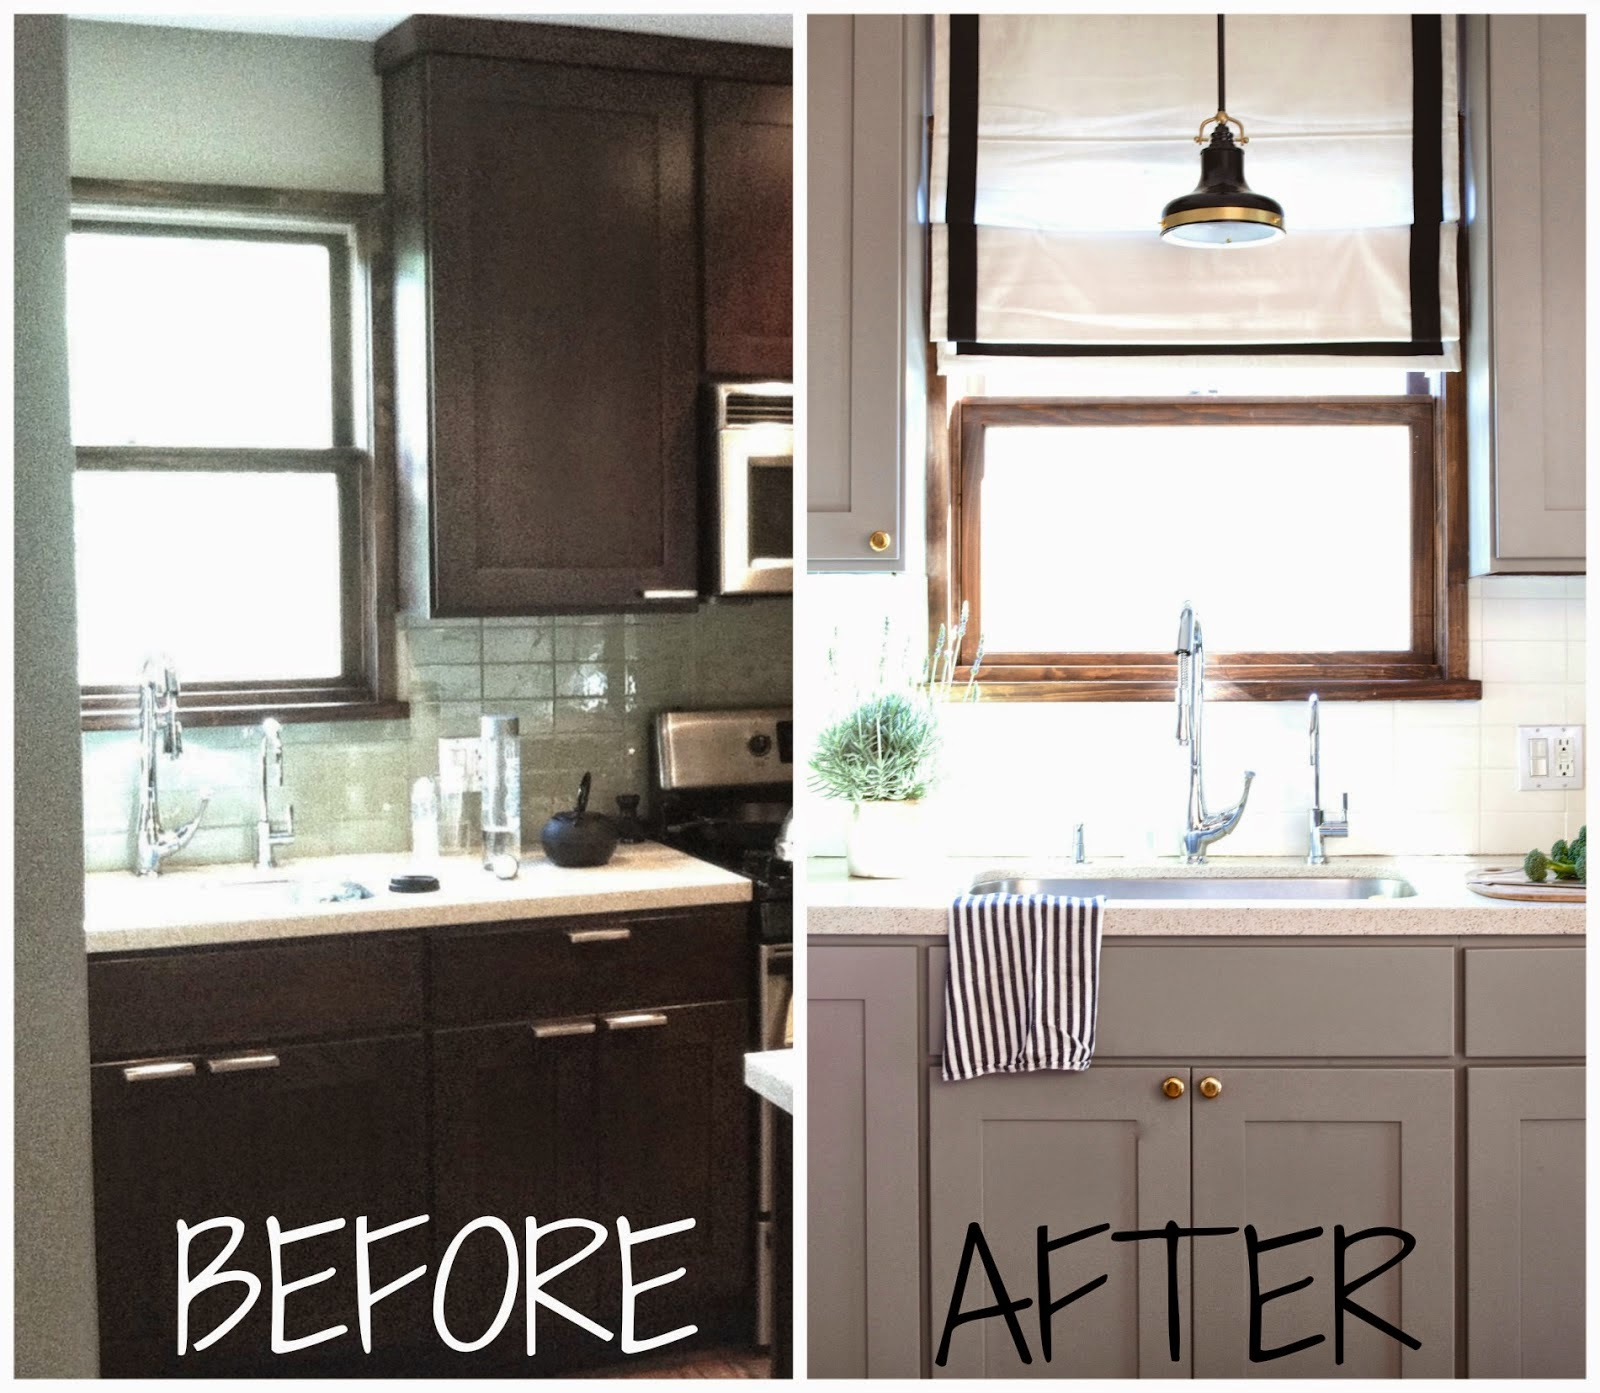 entire nitty gritty kitchen remodel catch painting kitchen tile backsplash kitchen backsplash